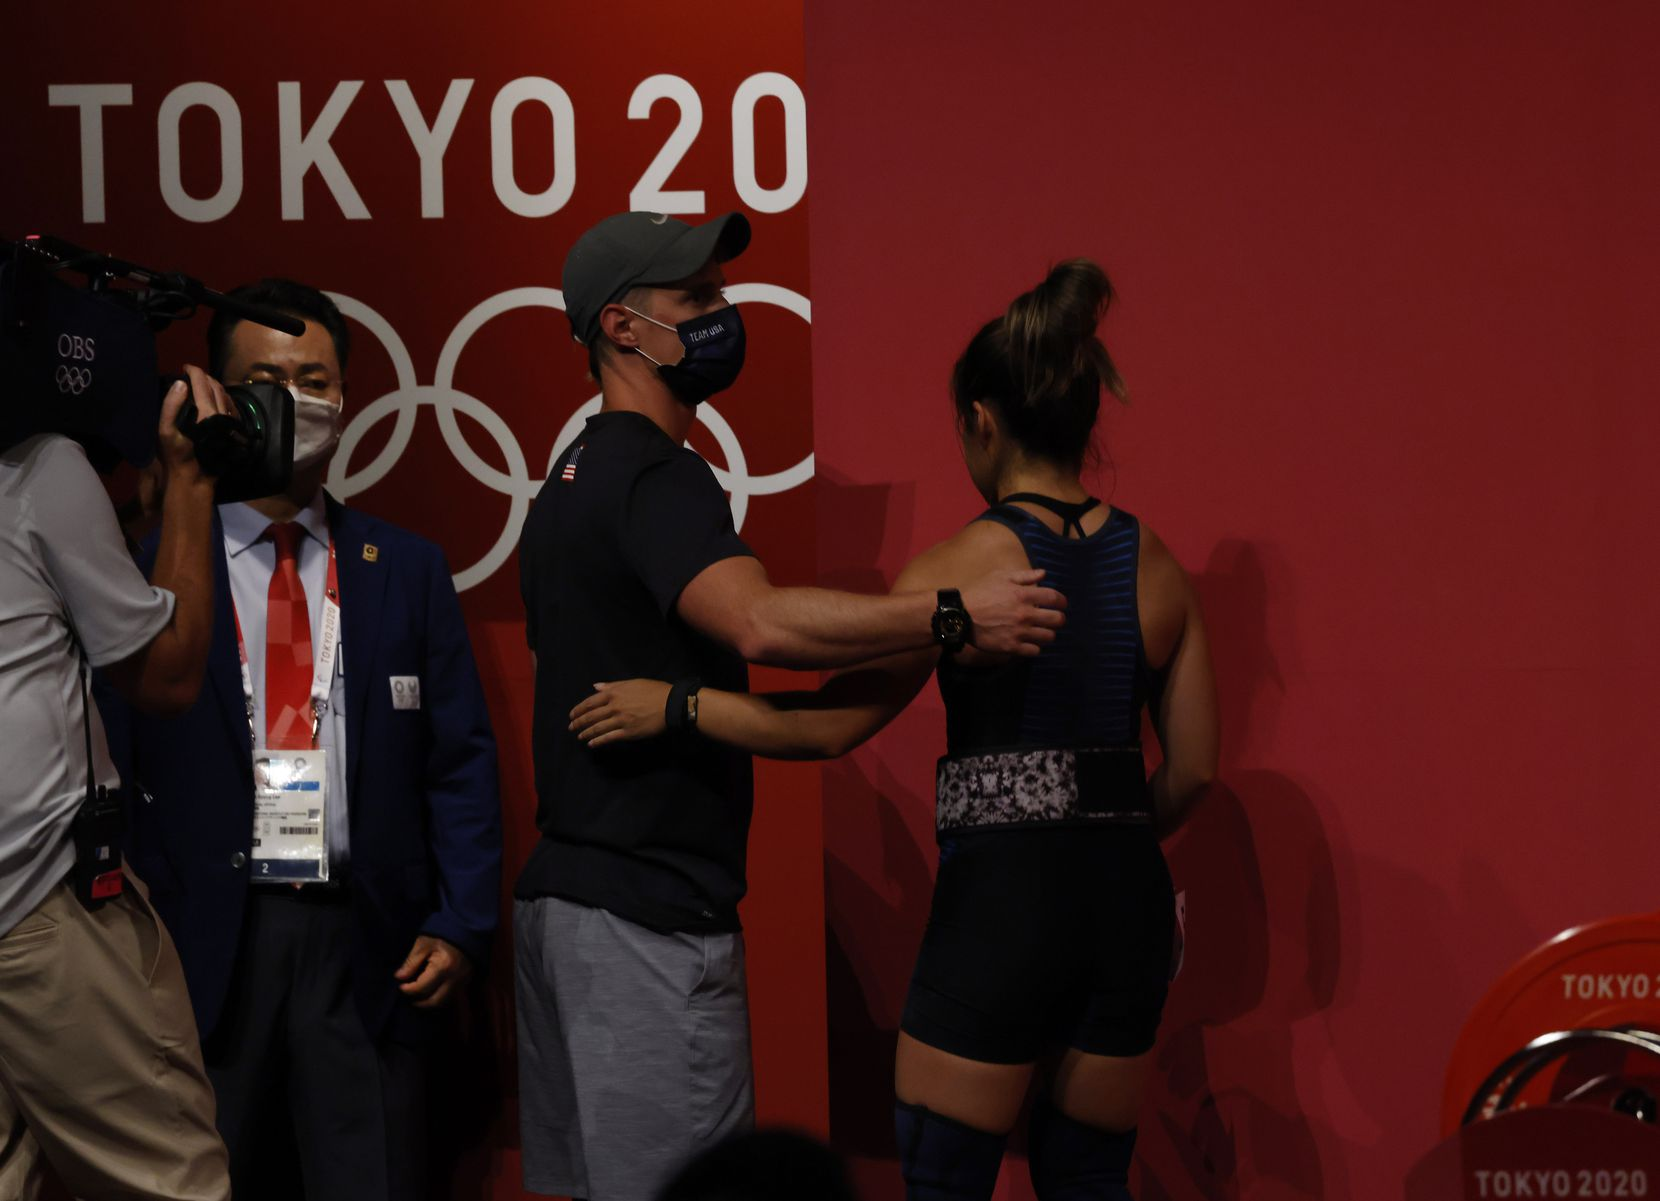 USA's Jourdan Delacruz is consoled by her coach Spencer Arnold after an unsuccessful attempt in lifting 108 kg on her third attempt in the clean and jerk round during the women's 49 kg weightlifting final during the postponed 2020 Tokyo Olympics at Tokyo International Forum on Saturday, July 24, 2021, in Tokyo, Japan. Delacruz received a no-lift on all three attempts of the clean and jerk round. (Vernon Bryant/The Dallas Morning News)